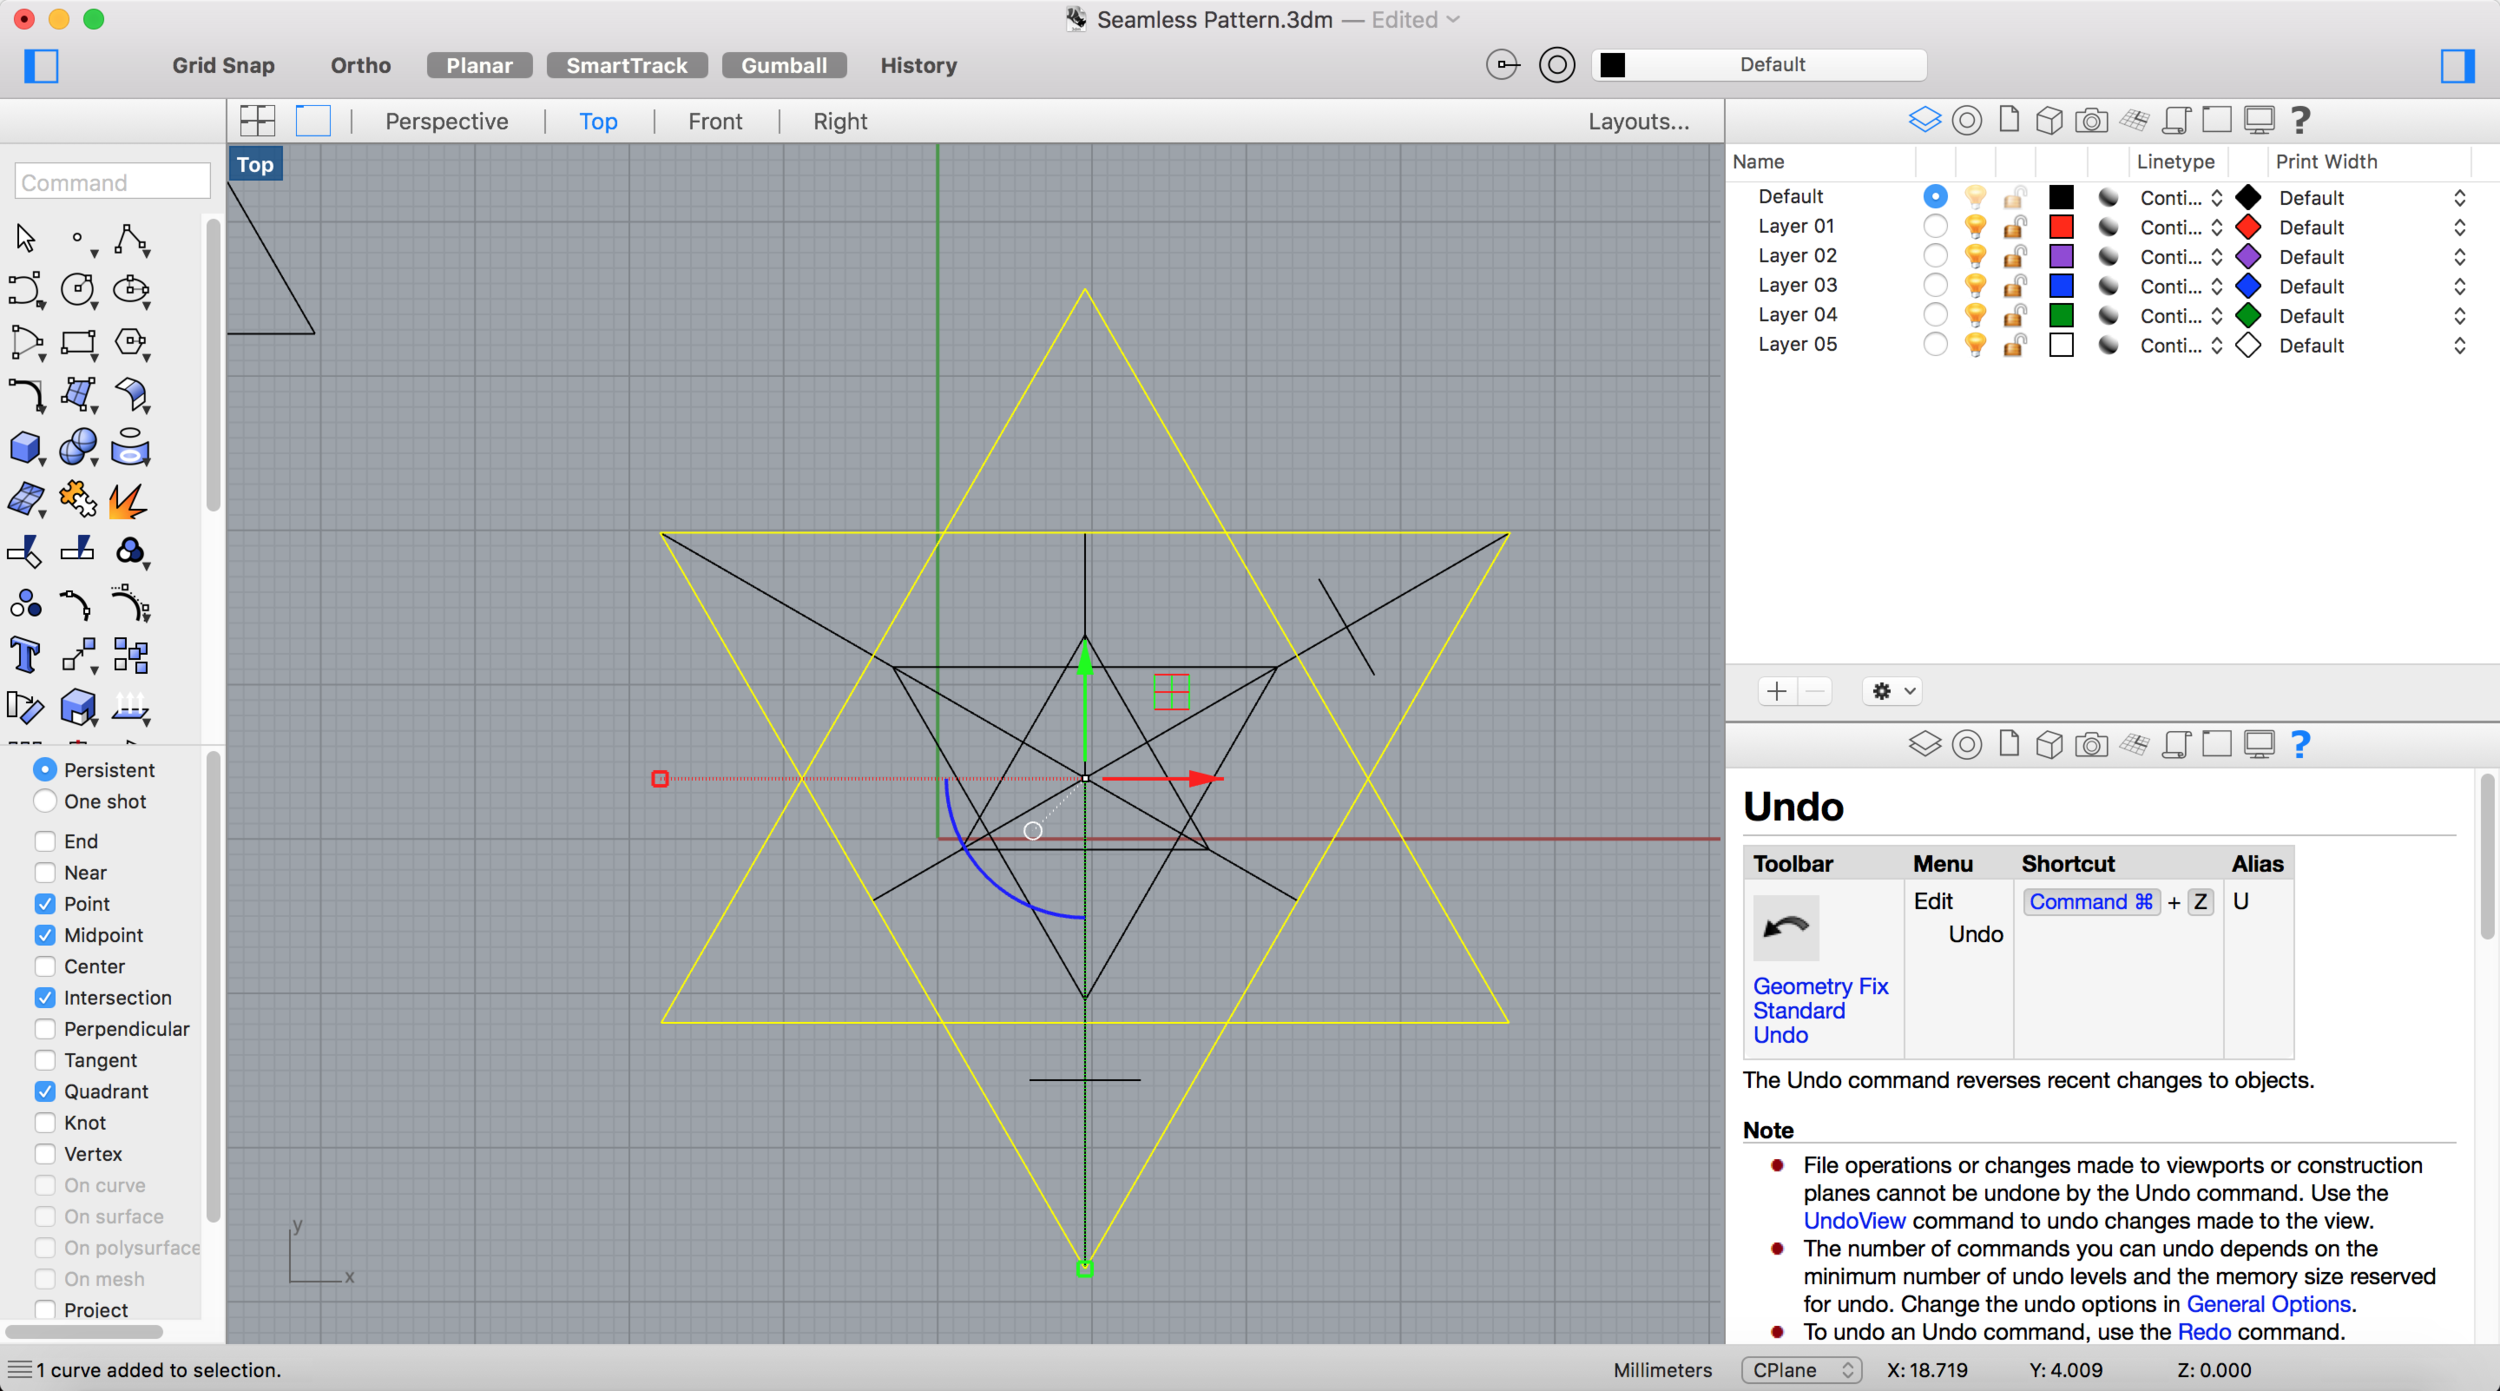 The two triangles superimposed create a hexagonal shape. I find this interesting and want to further explore this idea.